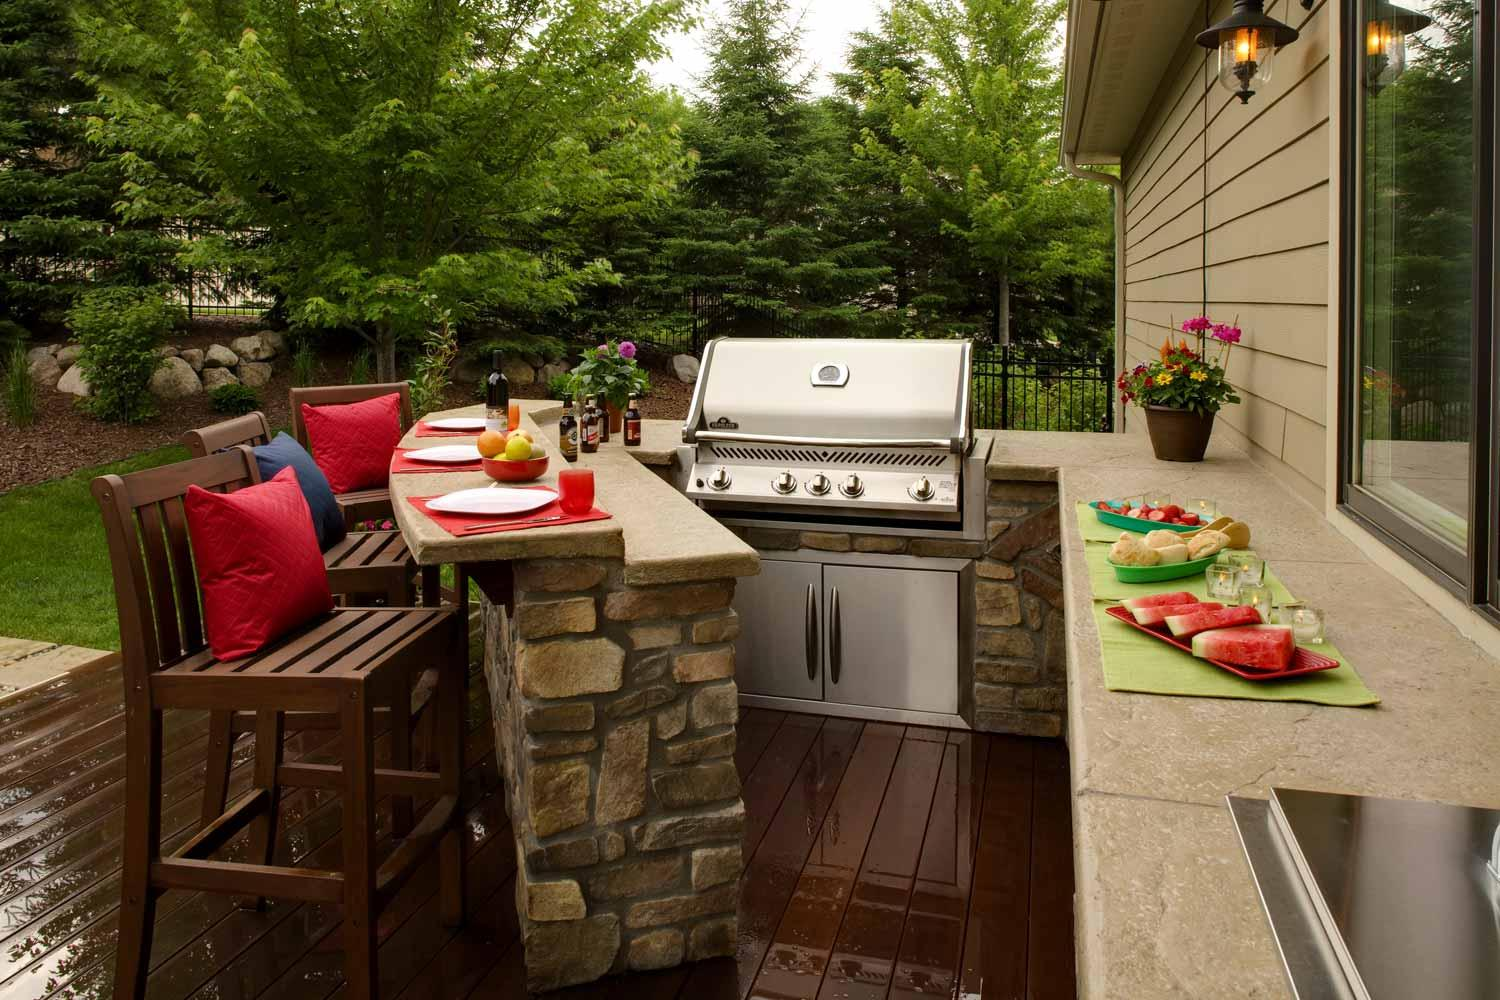 Outdoor kitchen with built in grill and two level bar counter